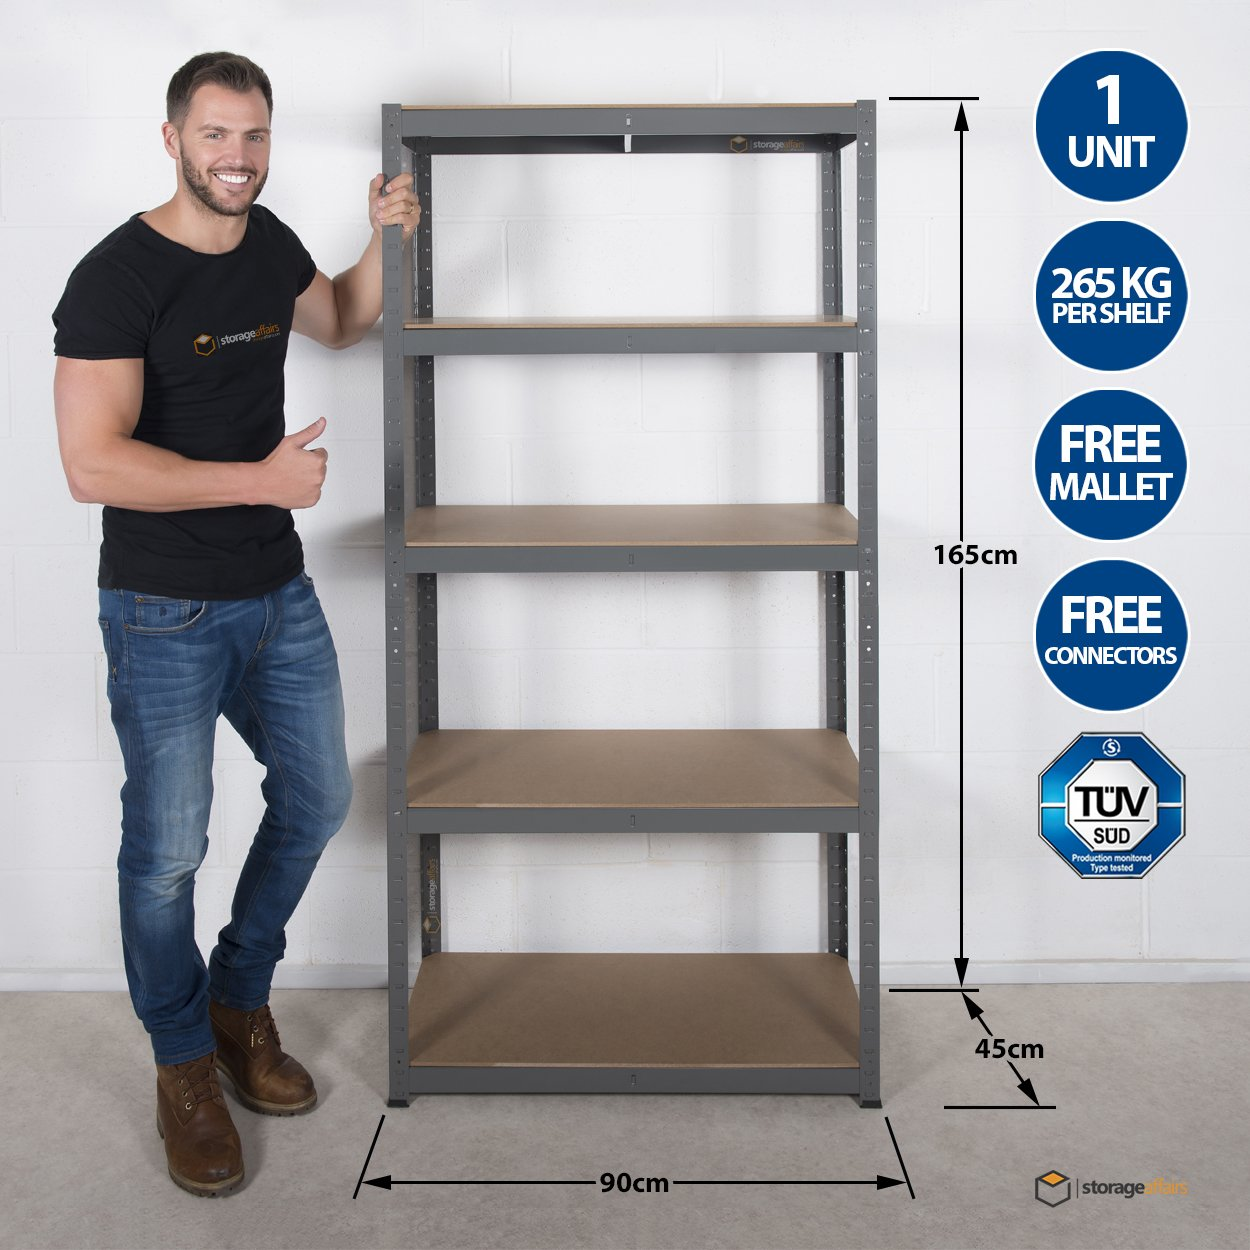 Garage Shelving Unit 5Tier EXTRA HD - 165 High, 90 Wide, 45 Deep (cm) 265kg Per Shelf 1.2mm Thick Frame Storage Affairs